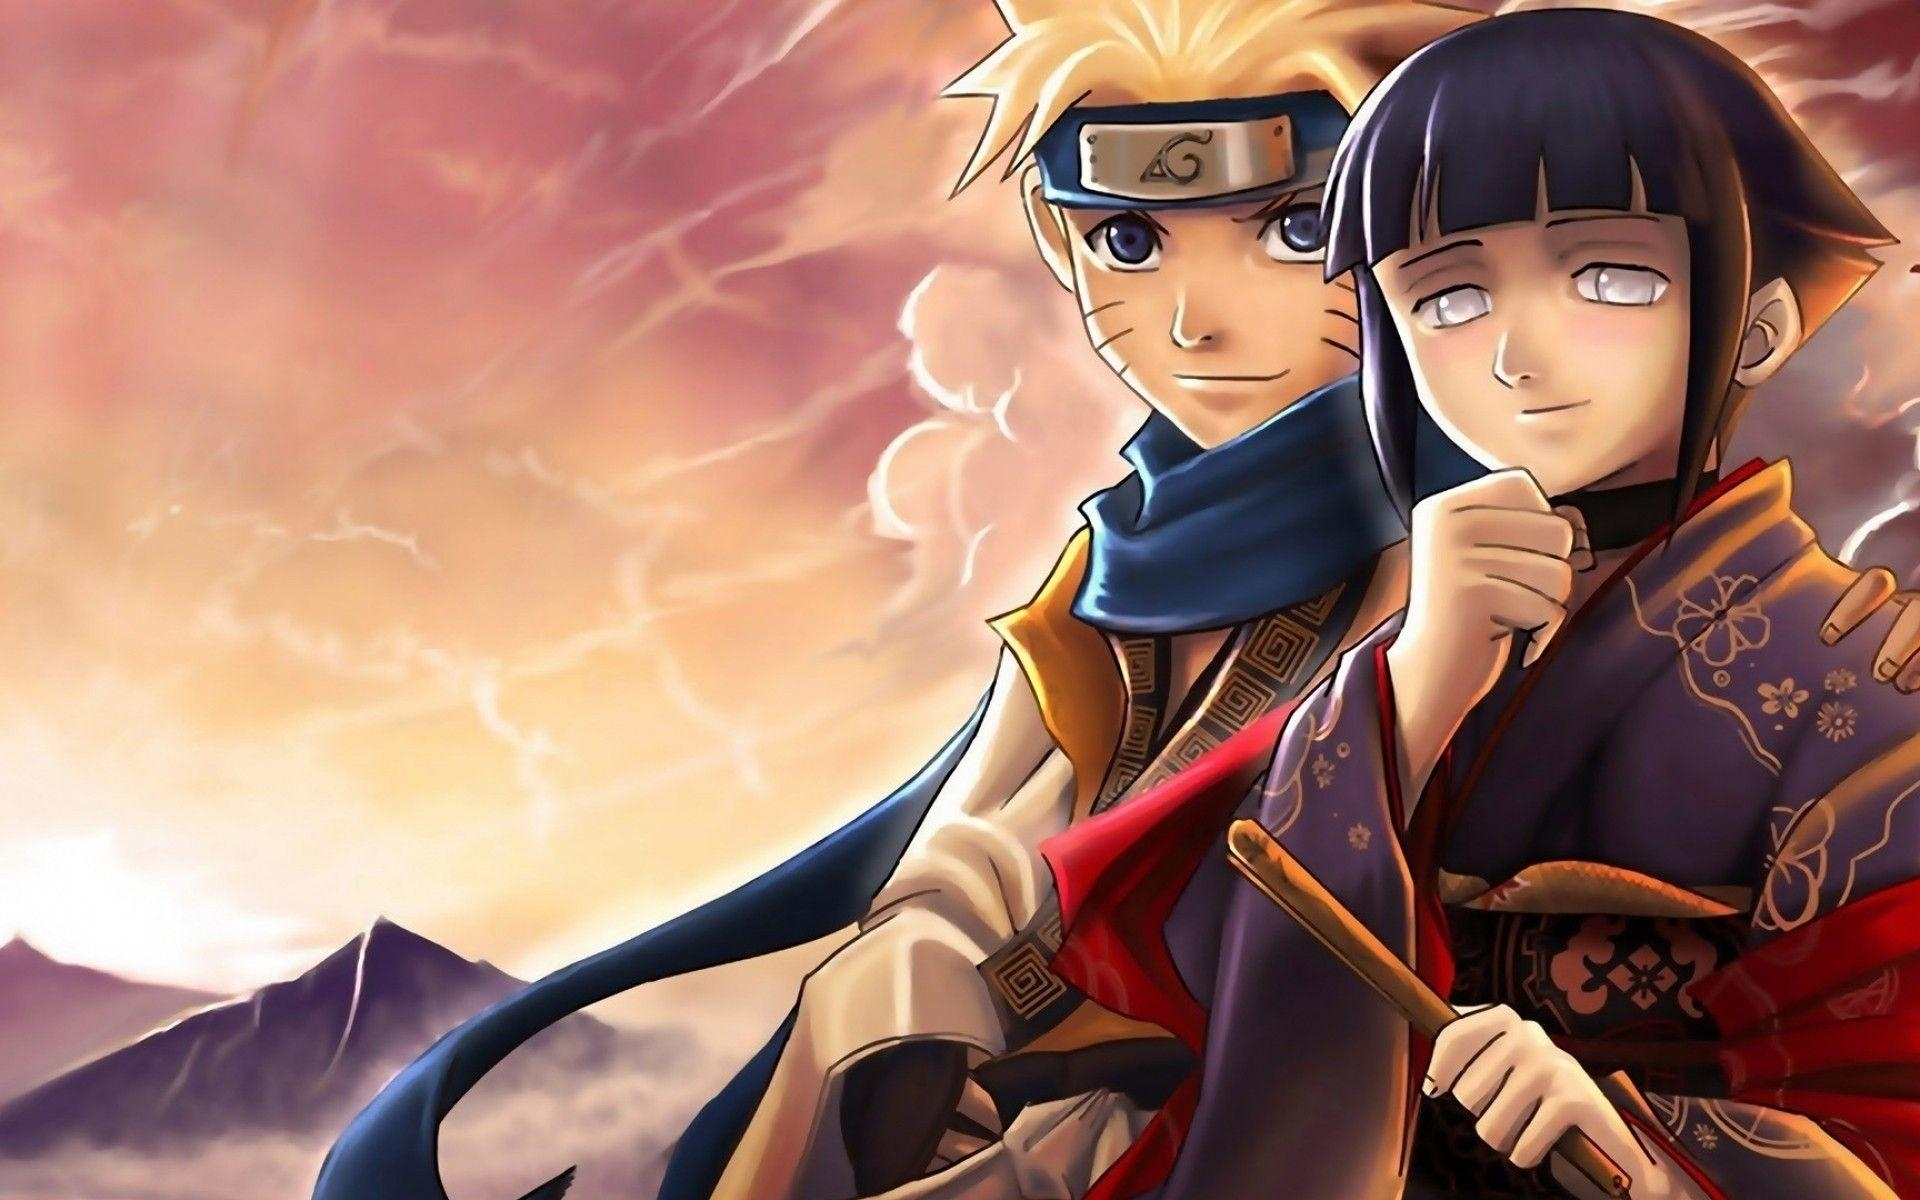 naruto and hinata wallpapers - wallpaper cave